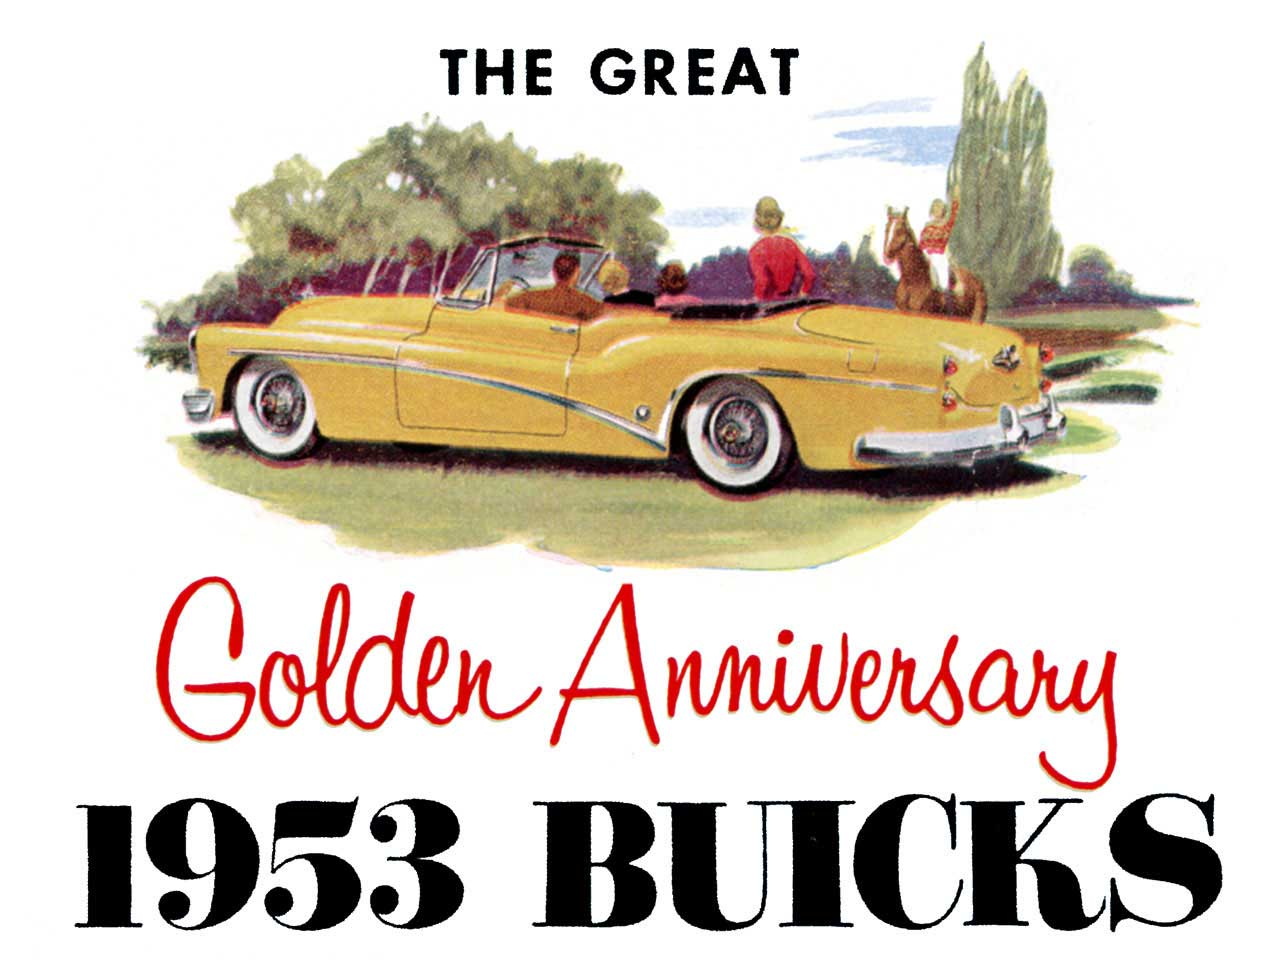 hight resolution of 1953 buick the great golden anniversary 1953 buicks